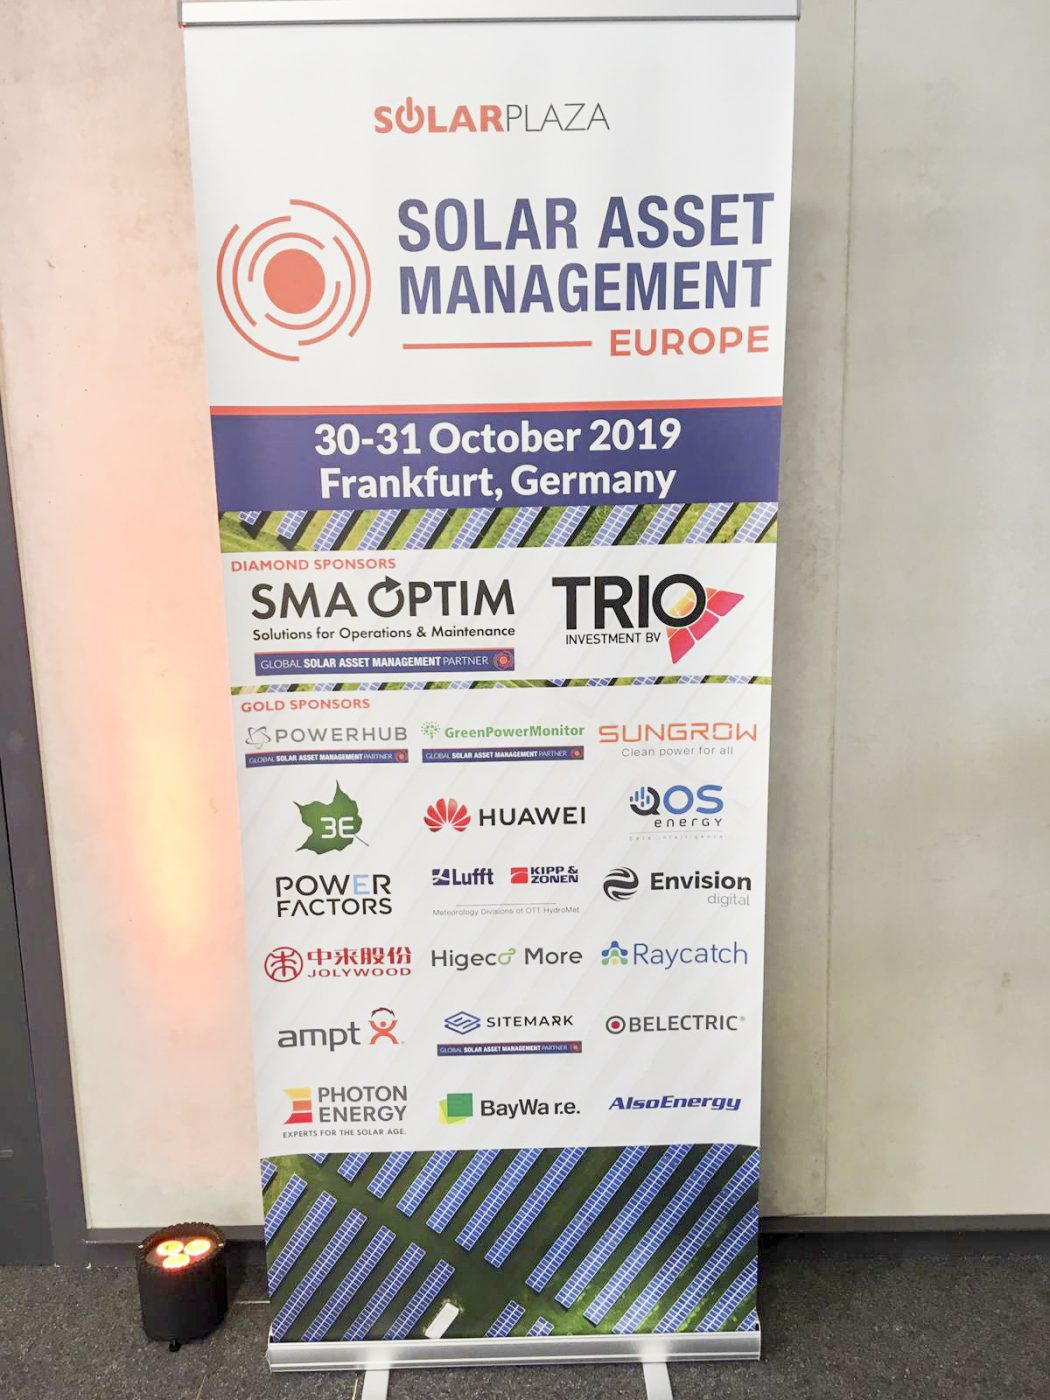 Belectric at Solar Asset Management 2019